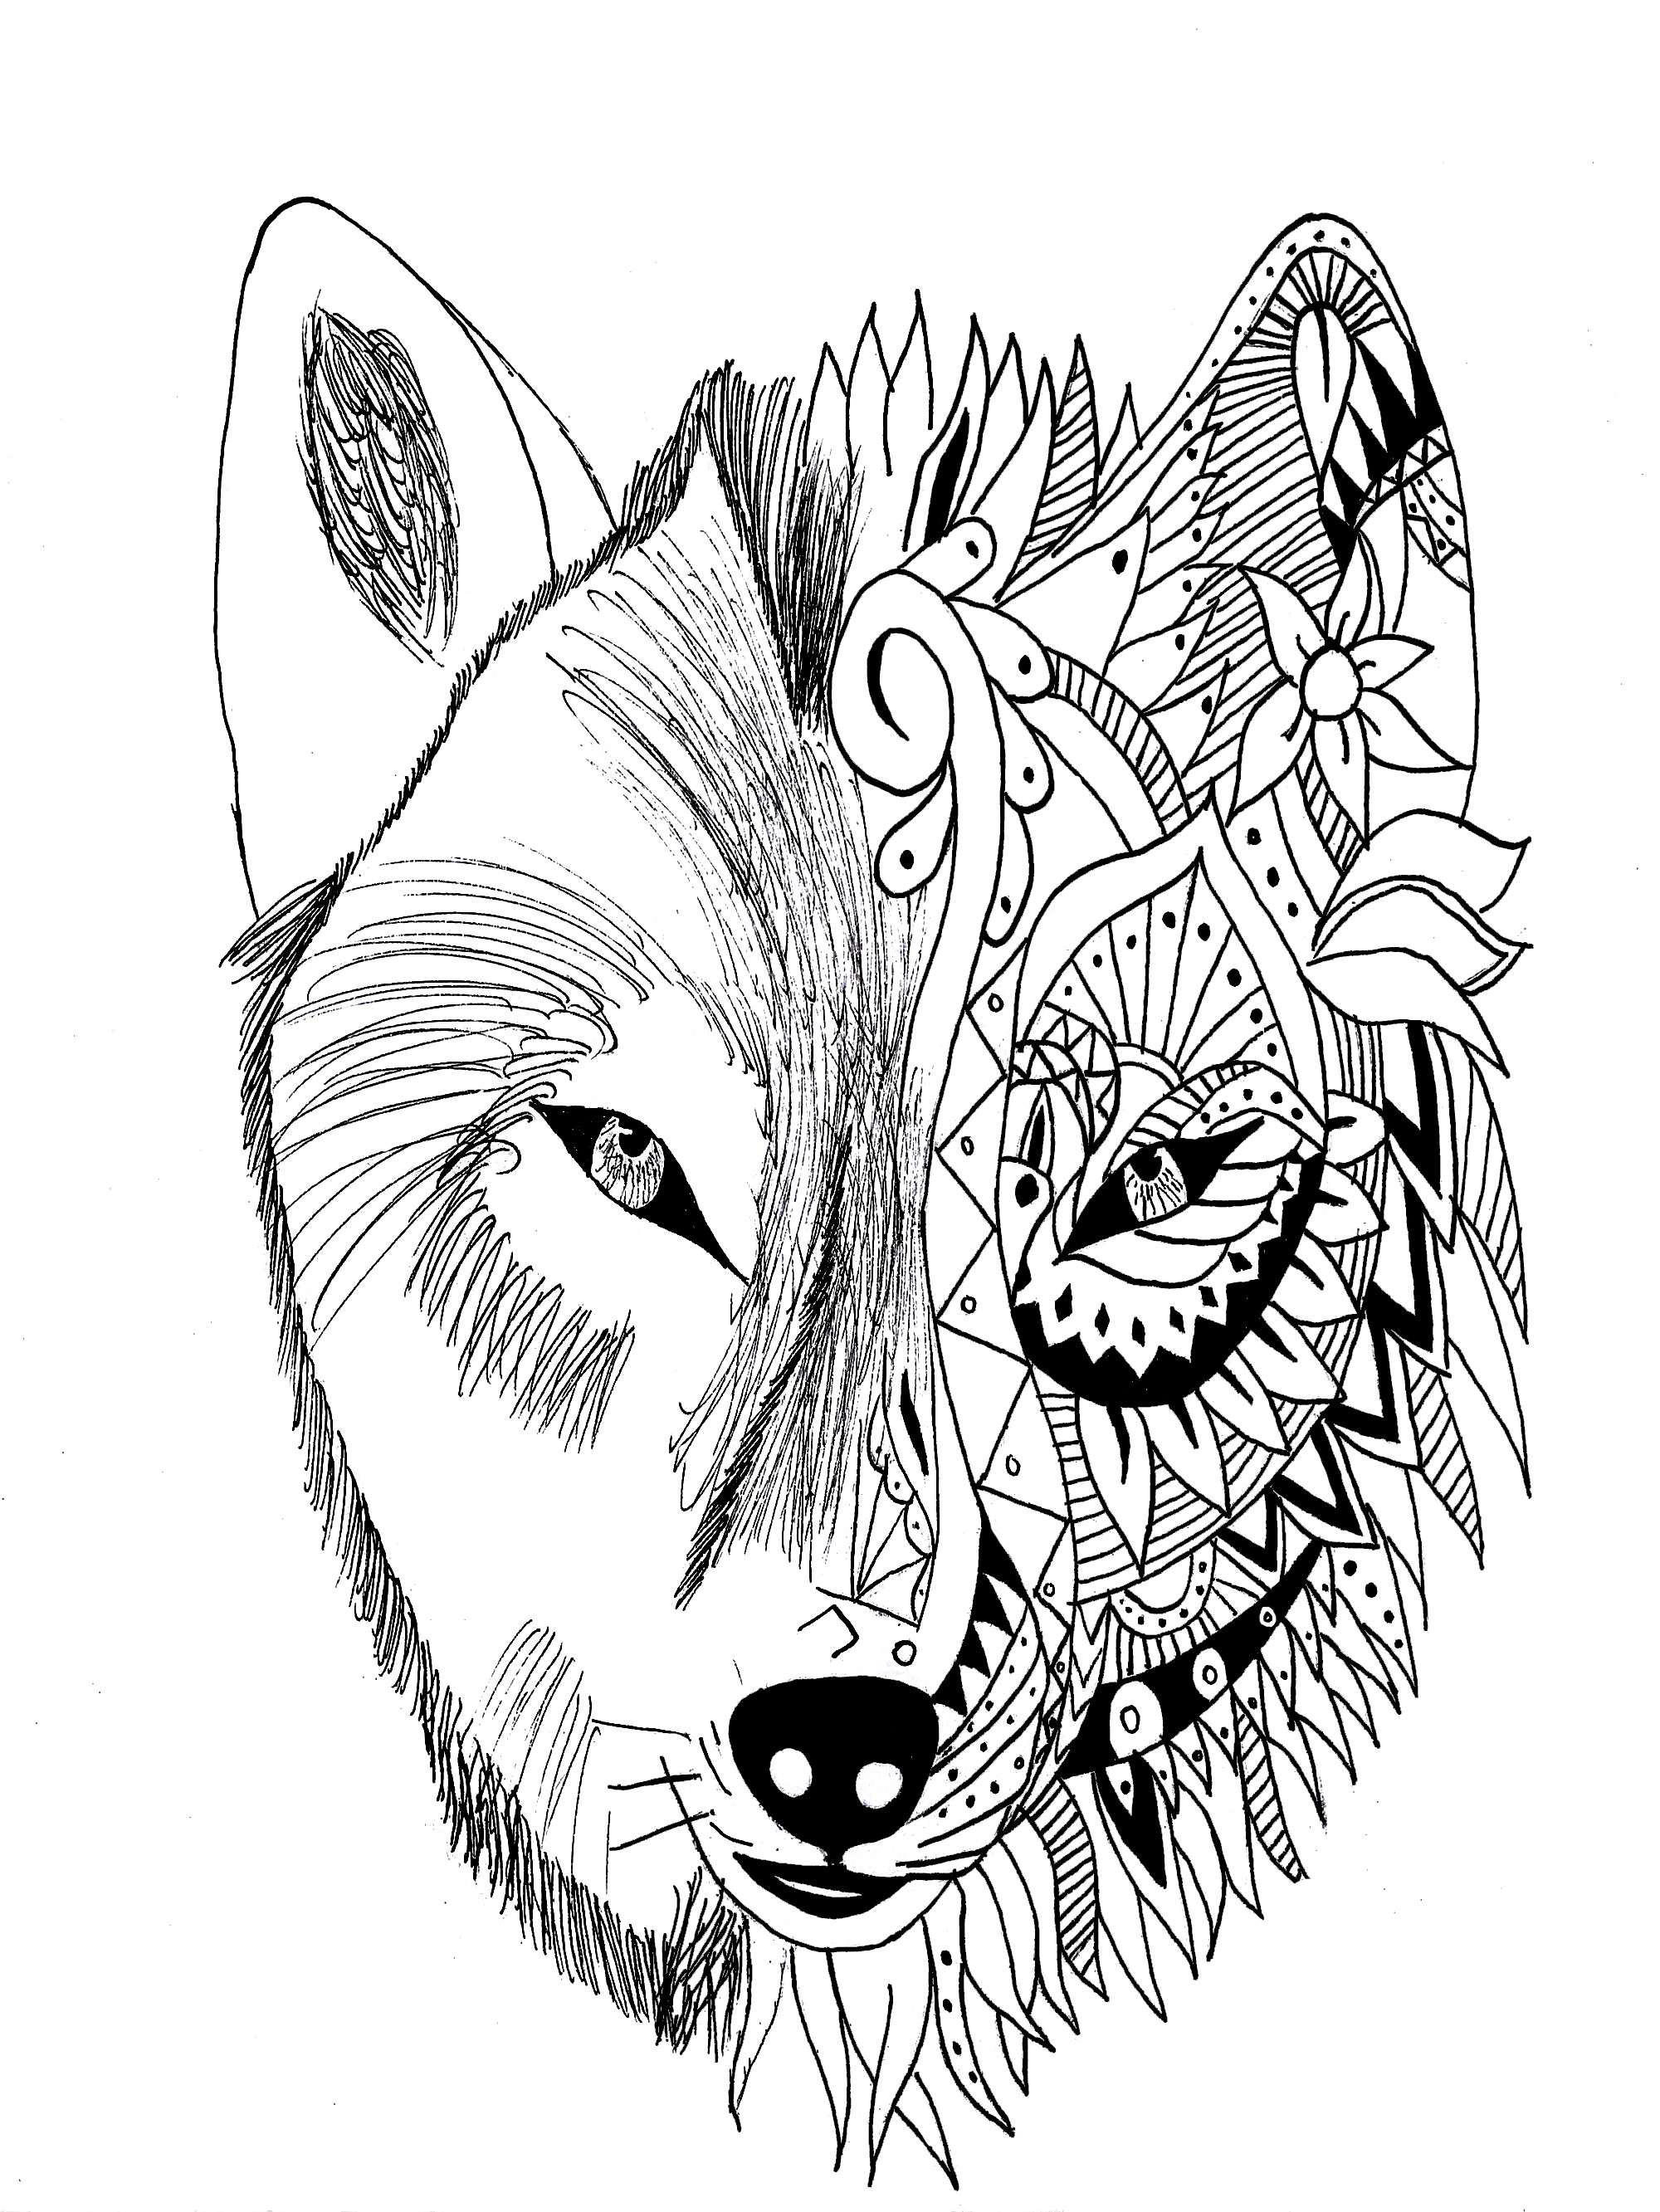 Wolf tattoo in two parts, realistic and zentangle style.